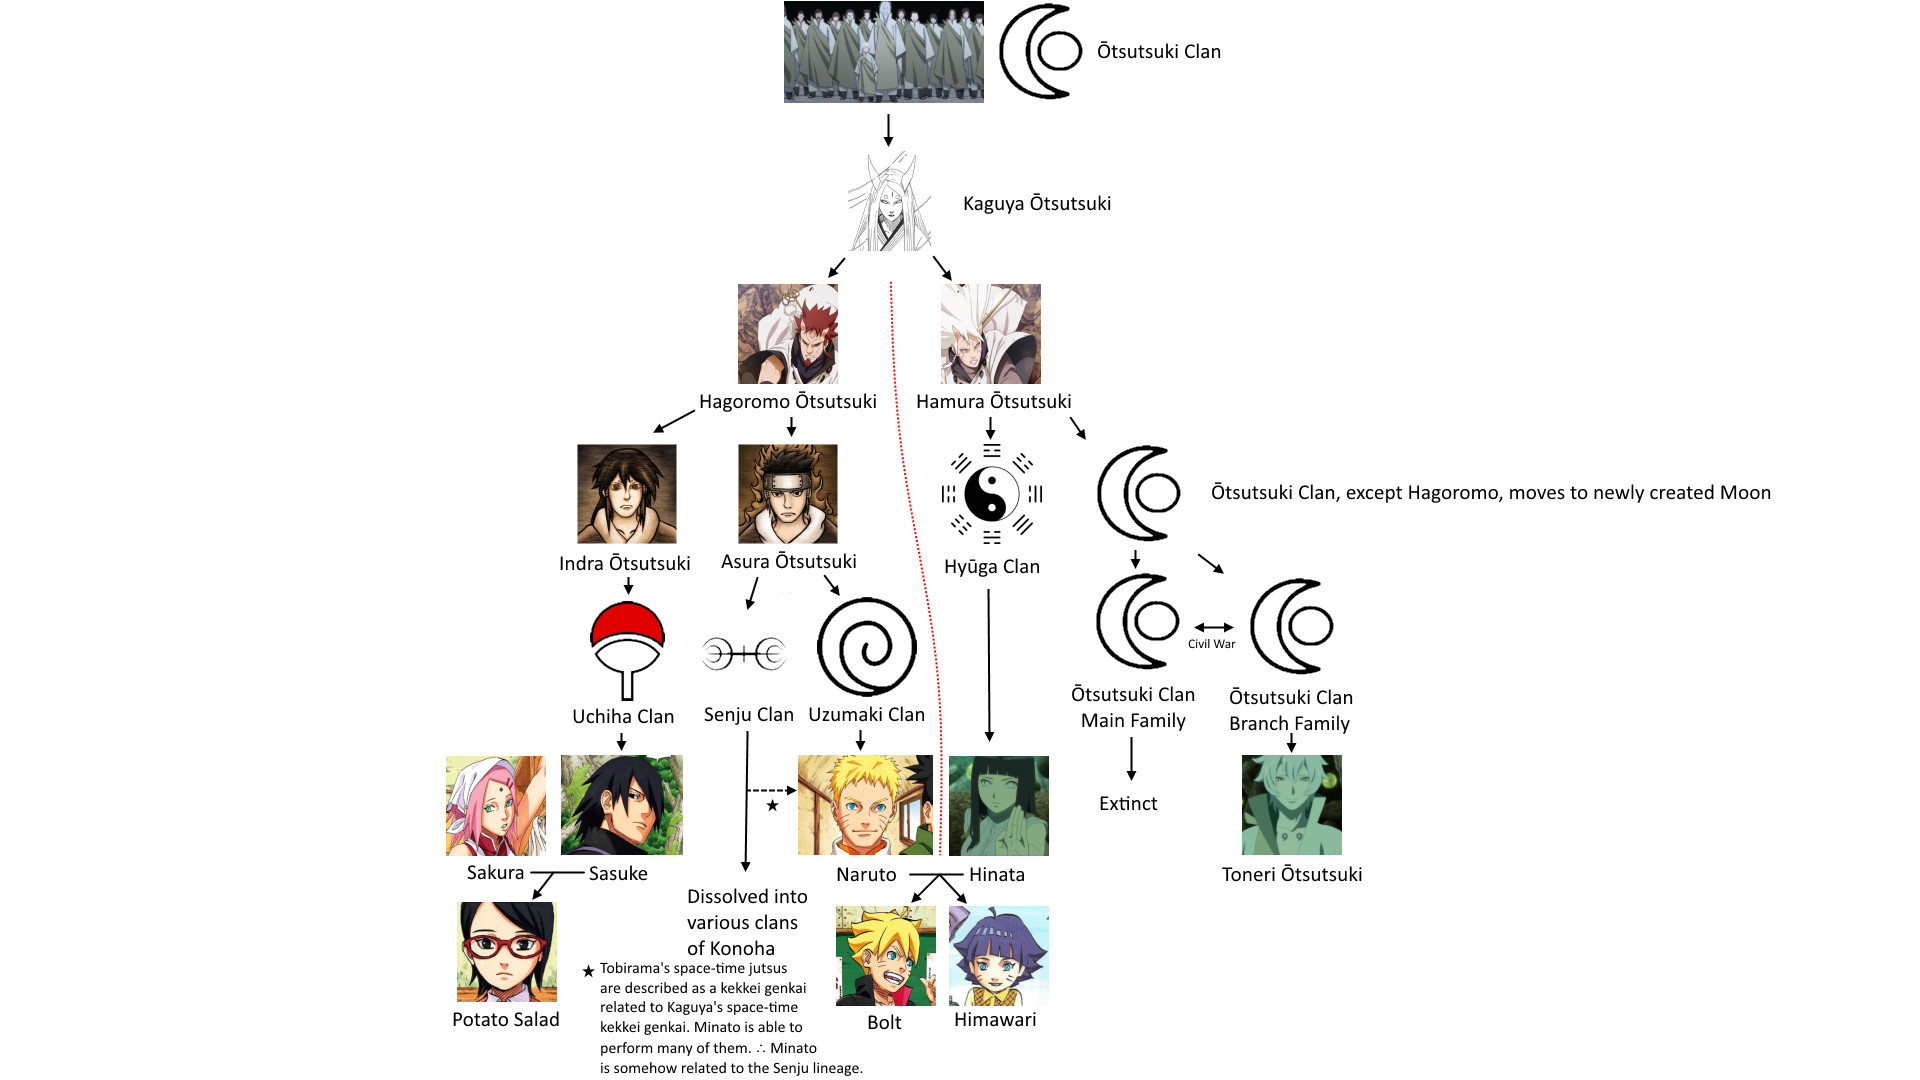 1920x1080 [The Last & Manga Spoilers] Complete Naruto Family Tree ...